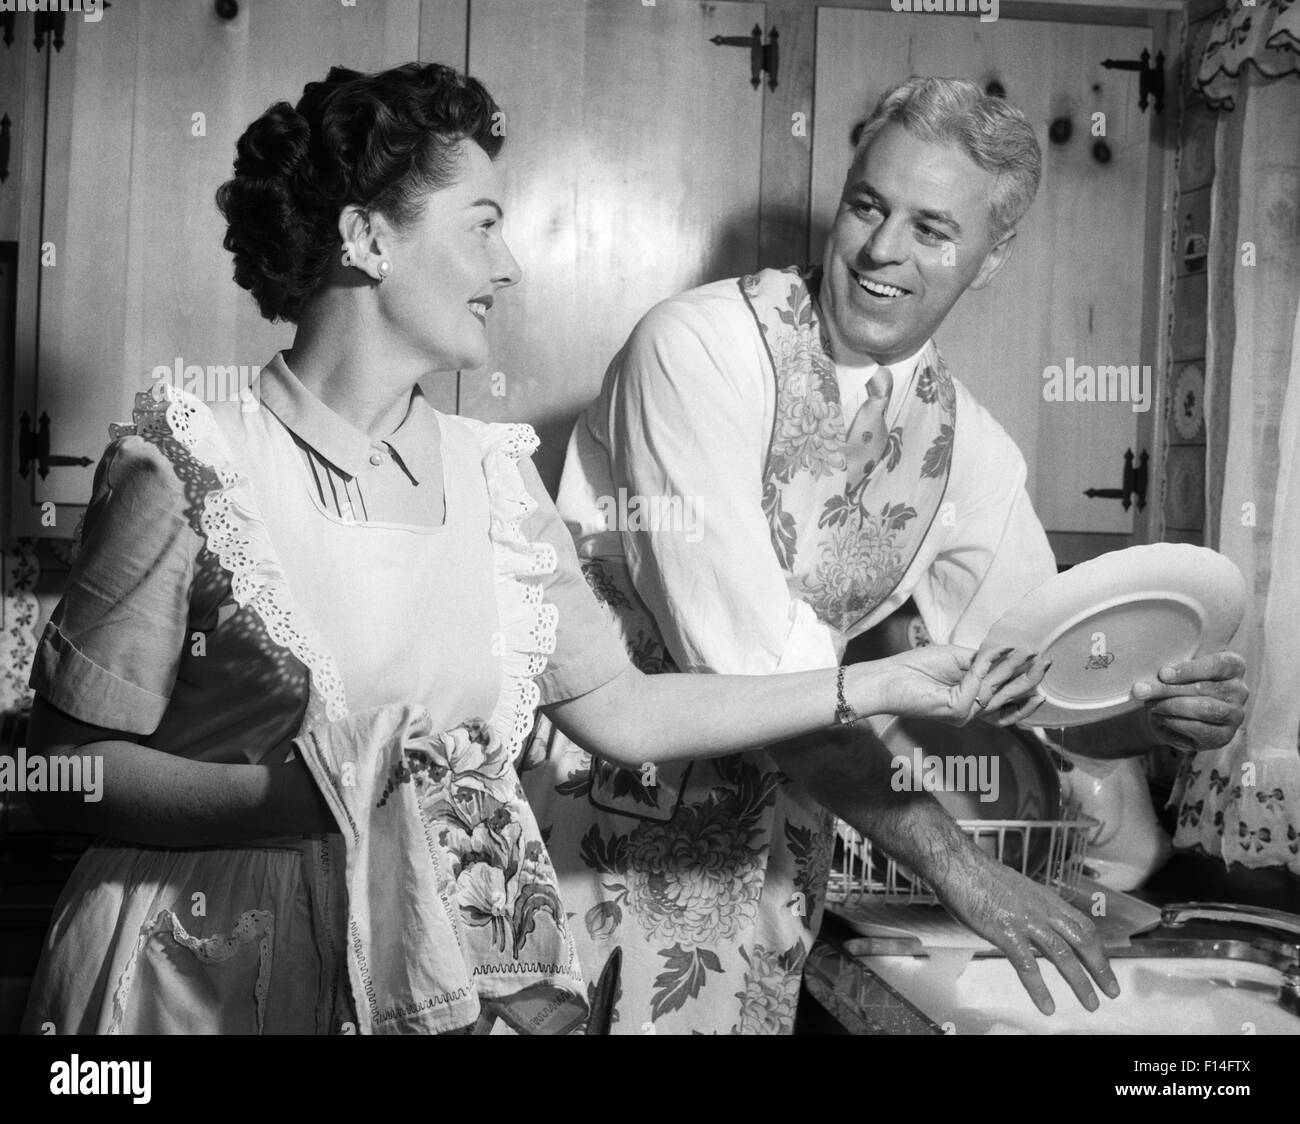 1950s housewife cleaning stock photos  u0026 1950s housewife cleaning stock images